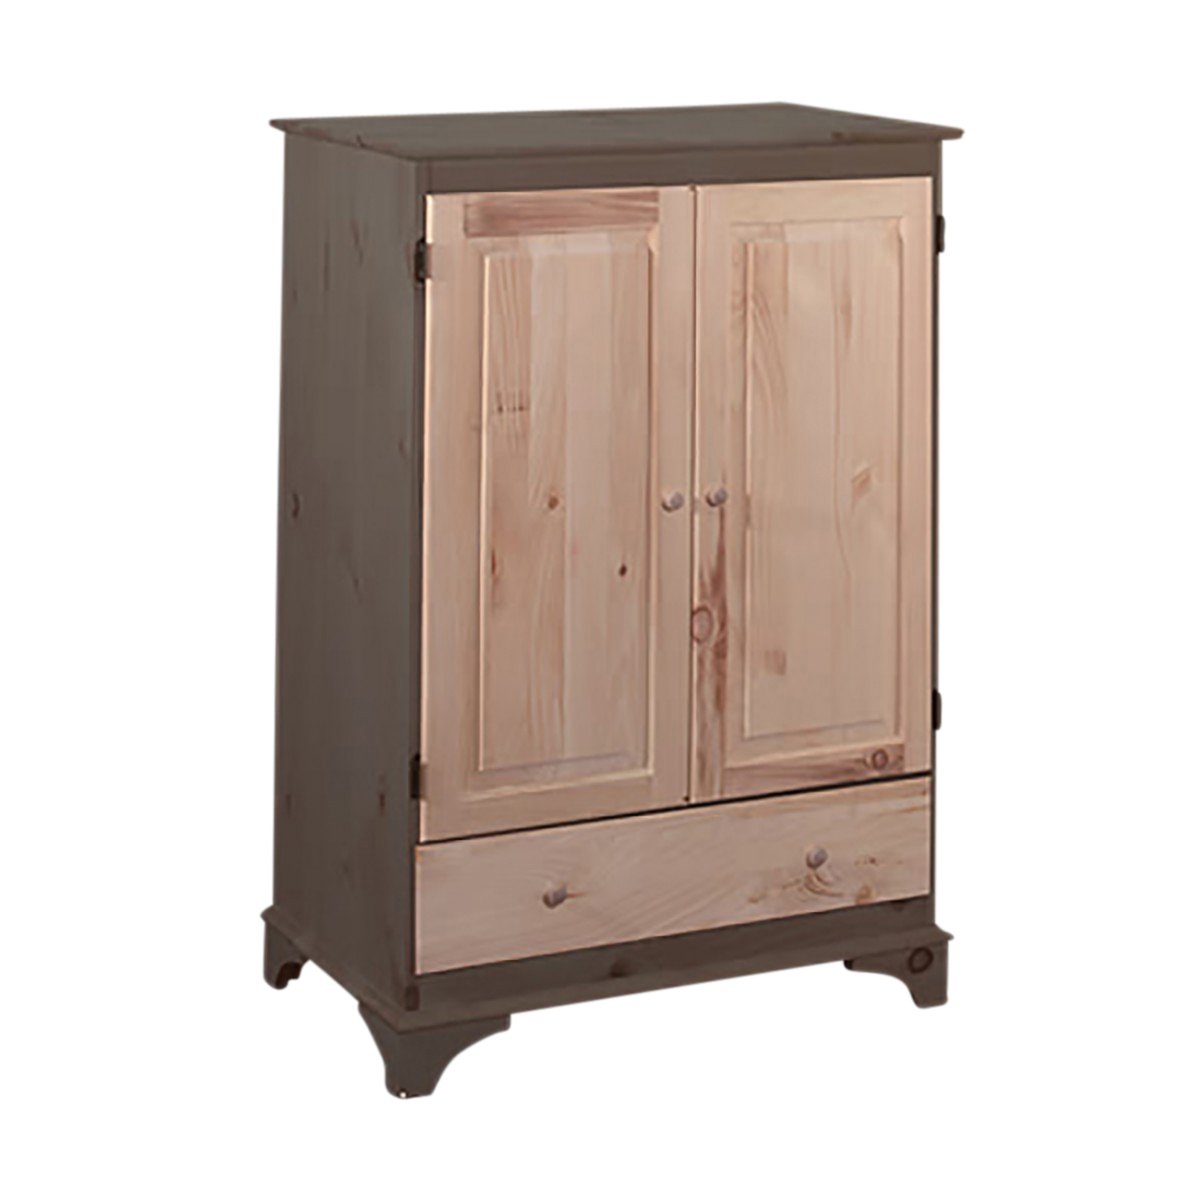 Cheap Unfinished Pine Cabinet Doors Find Unfinished Pine Cabinet Doors Deals On Line At Alibaba Com